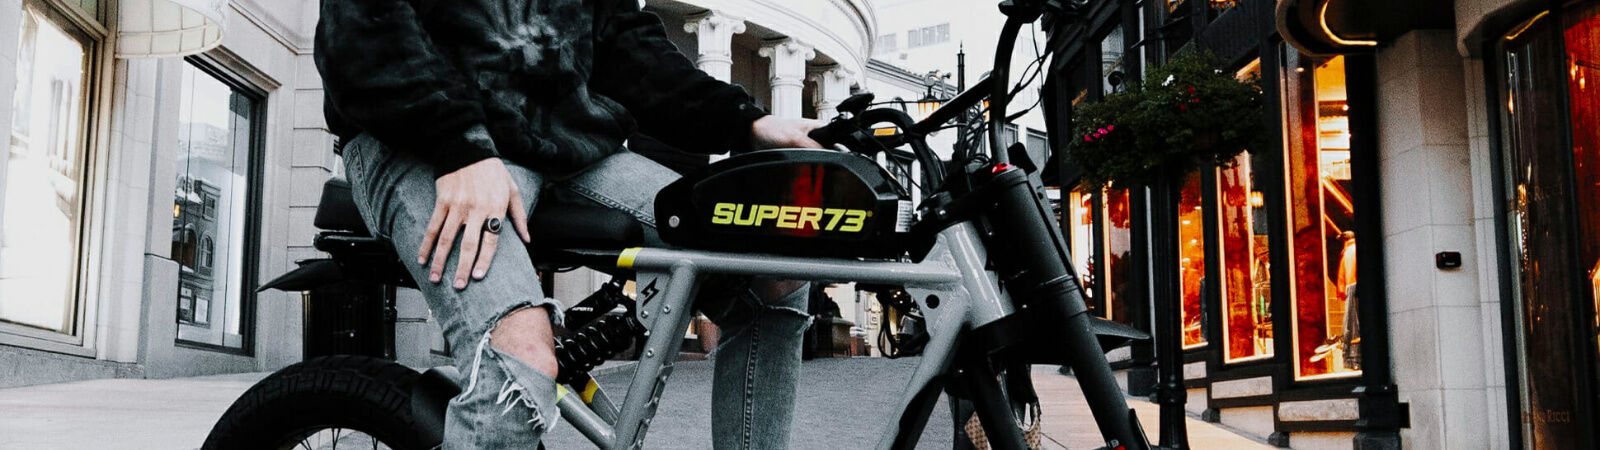 Super73 R Series Electric Motorbikes available at Sportique.com